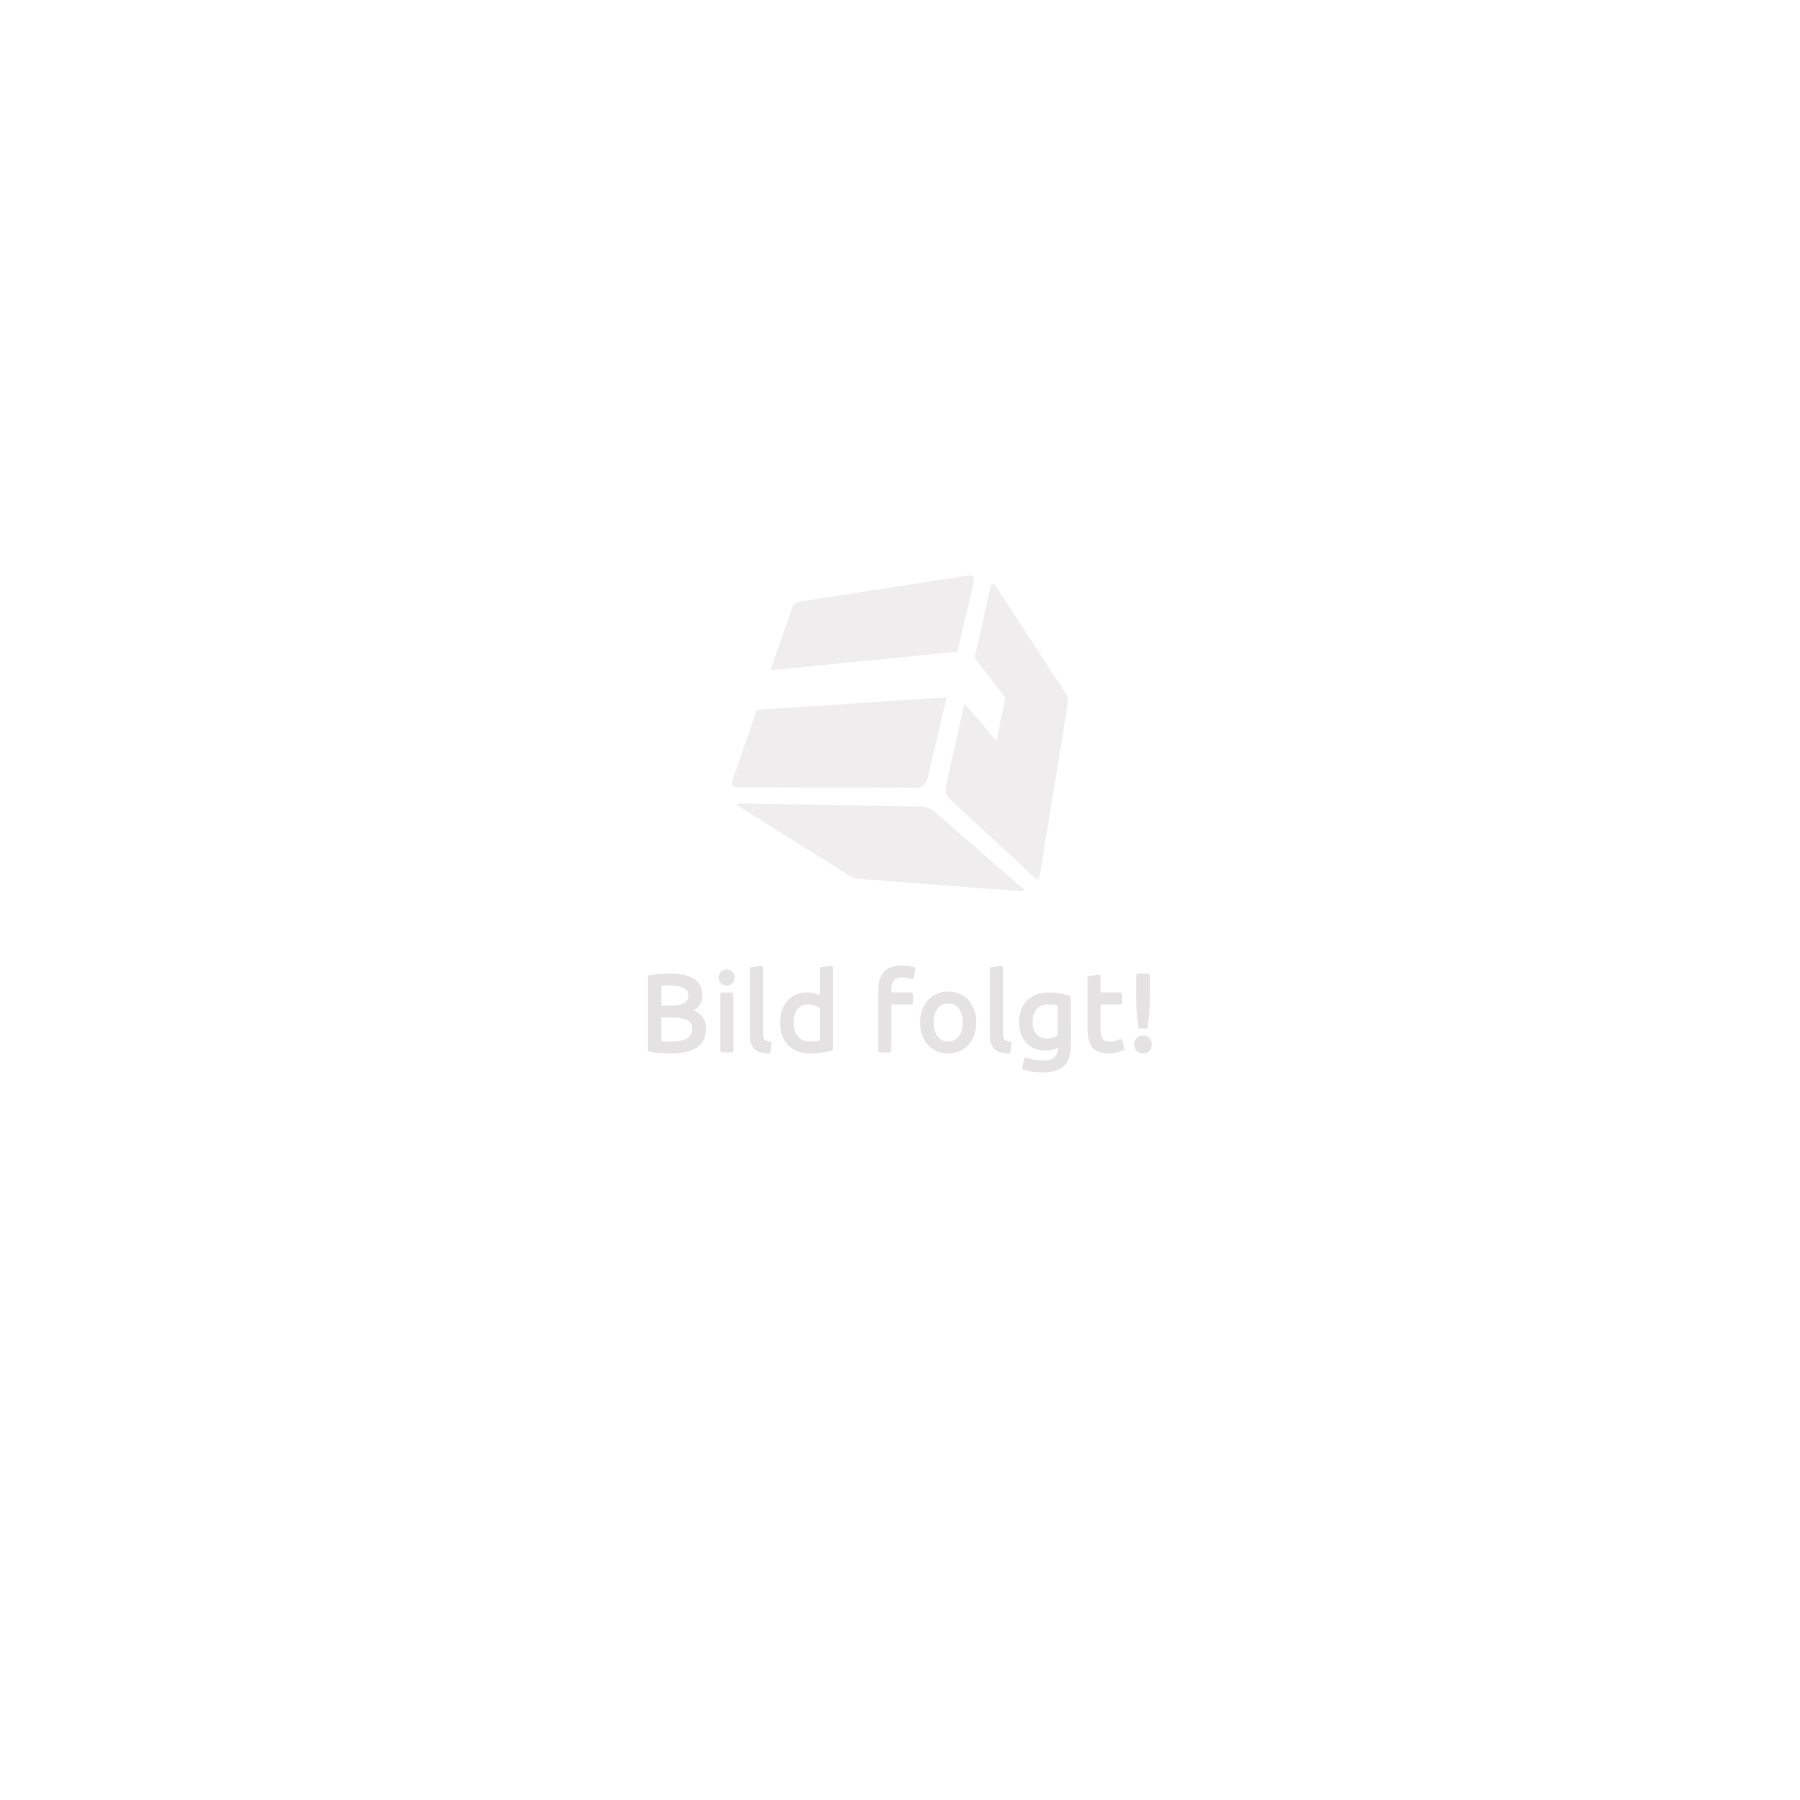 poly rattan gartenm bel sitzbank mit tisch lounge bank sofa gartenbank braun ebay. Black Bedroom Furniture Sets. Home Design Ideas